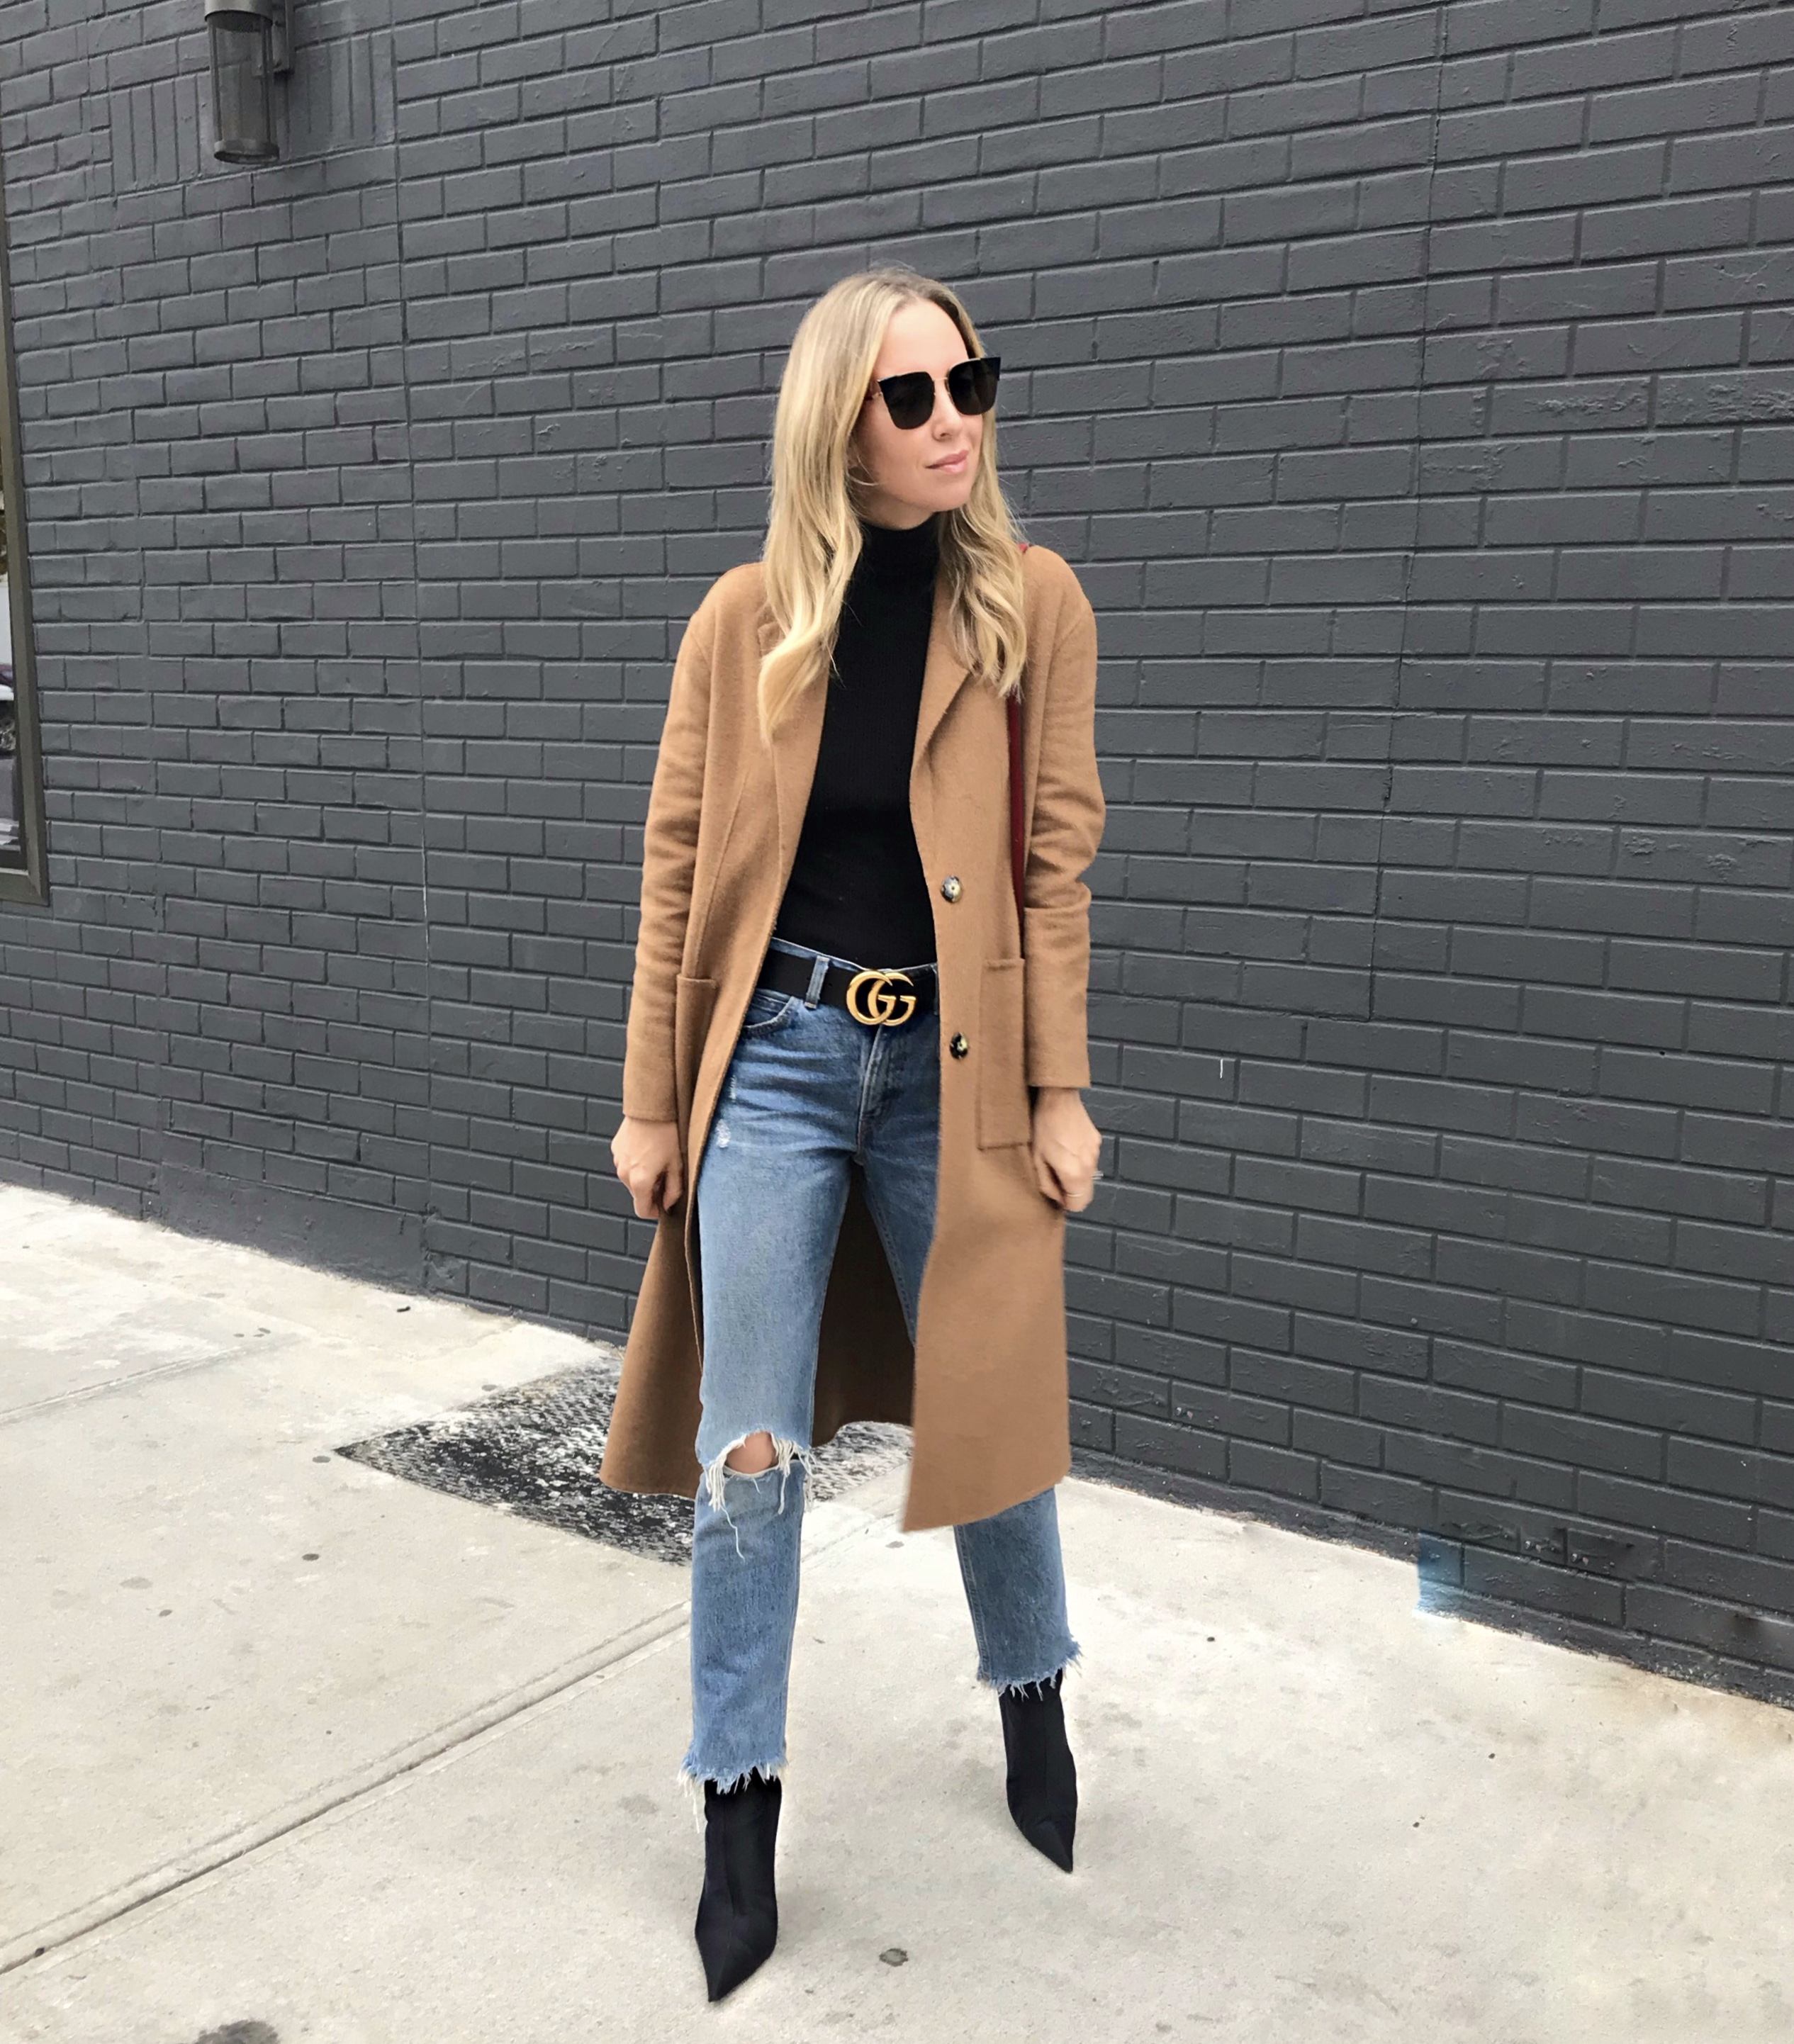 Camel Coat and Gucci Belt, Helena Glazer of Brooklyn Blonde